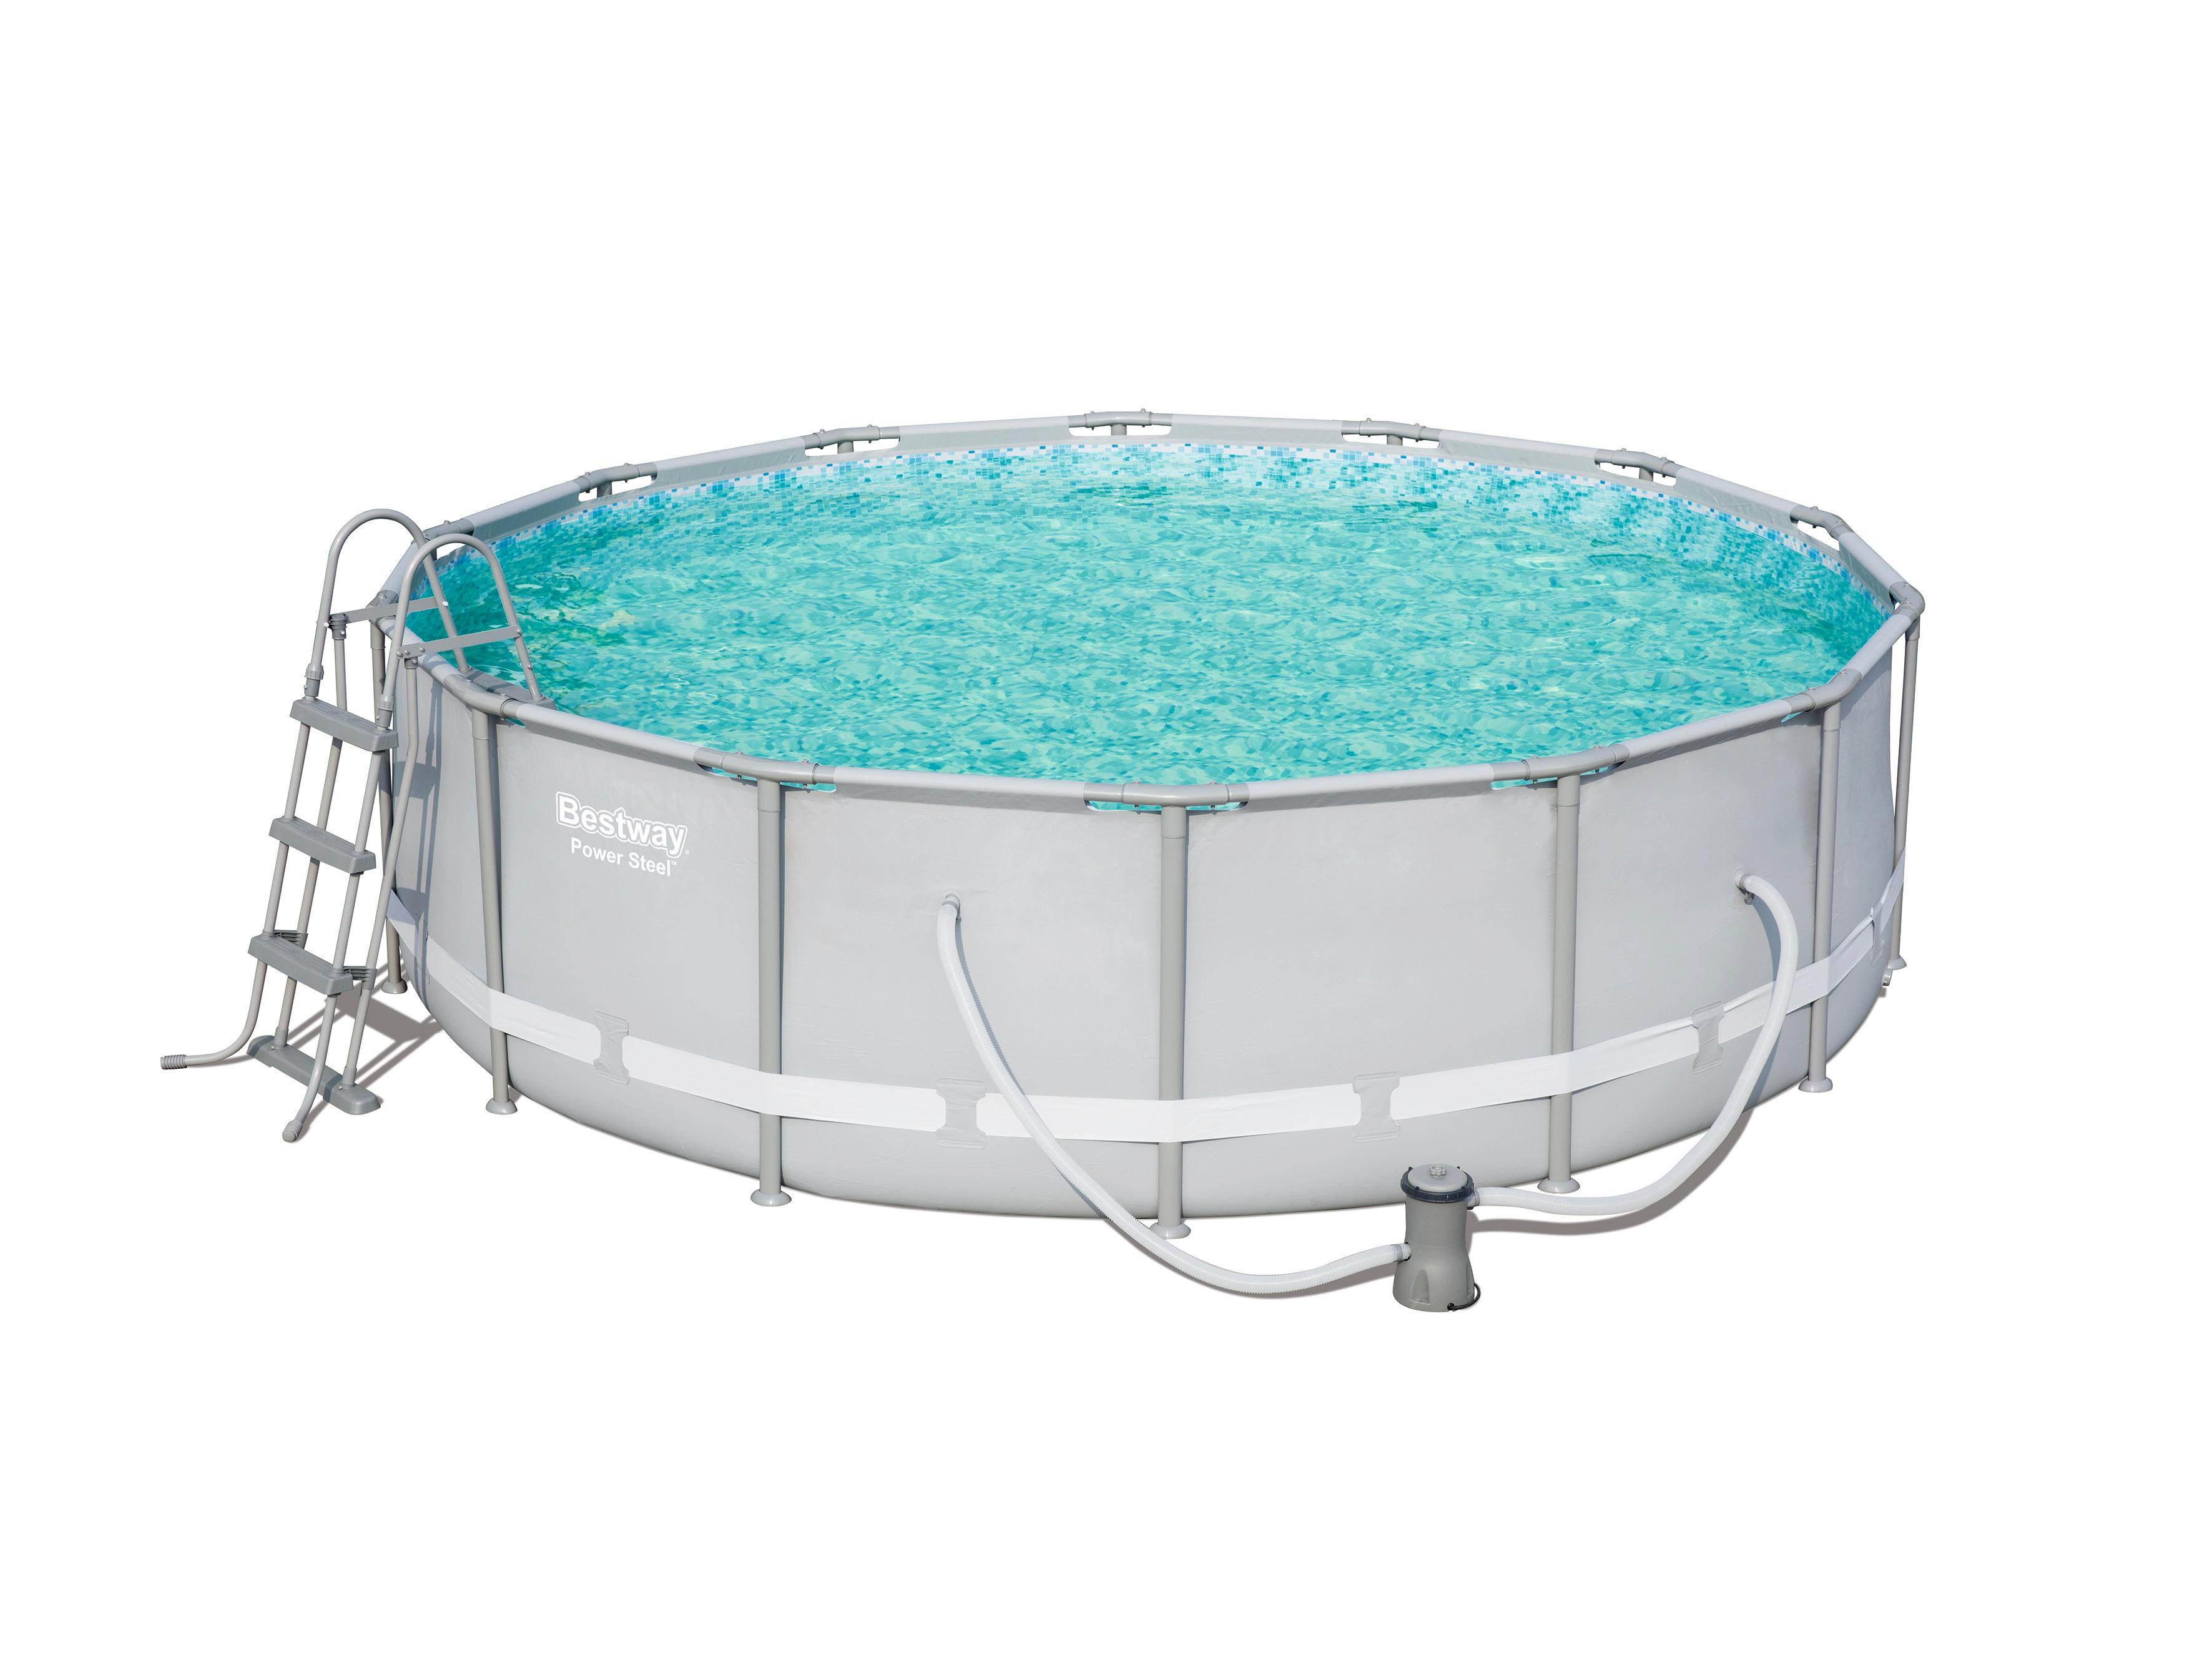 Bestway Pool Nicht Rund Poolset Power Steel 56641